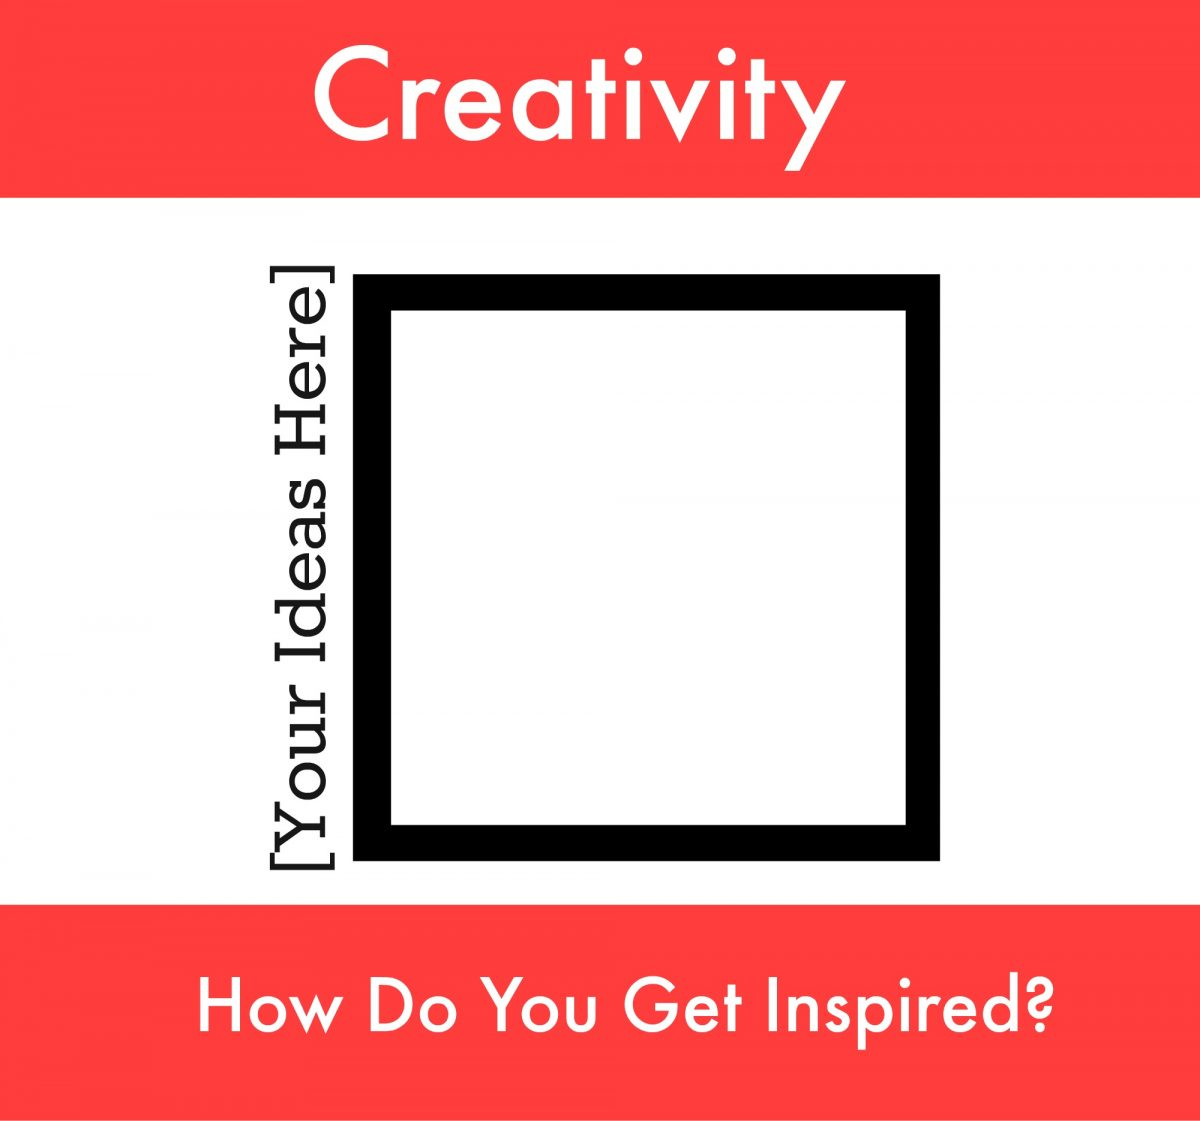 How Do You Get Inspired?